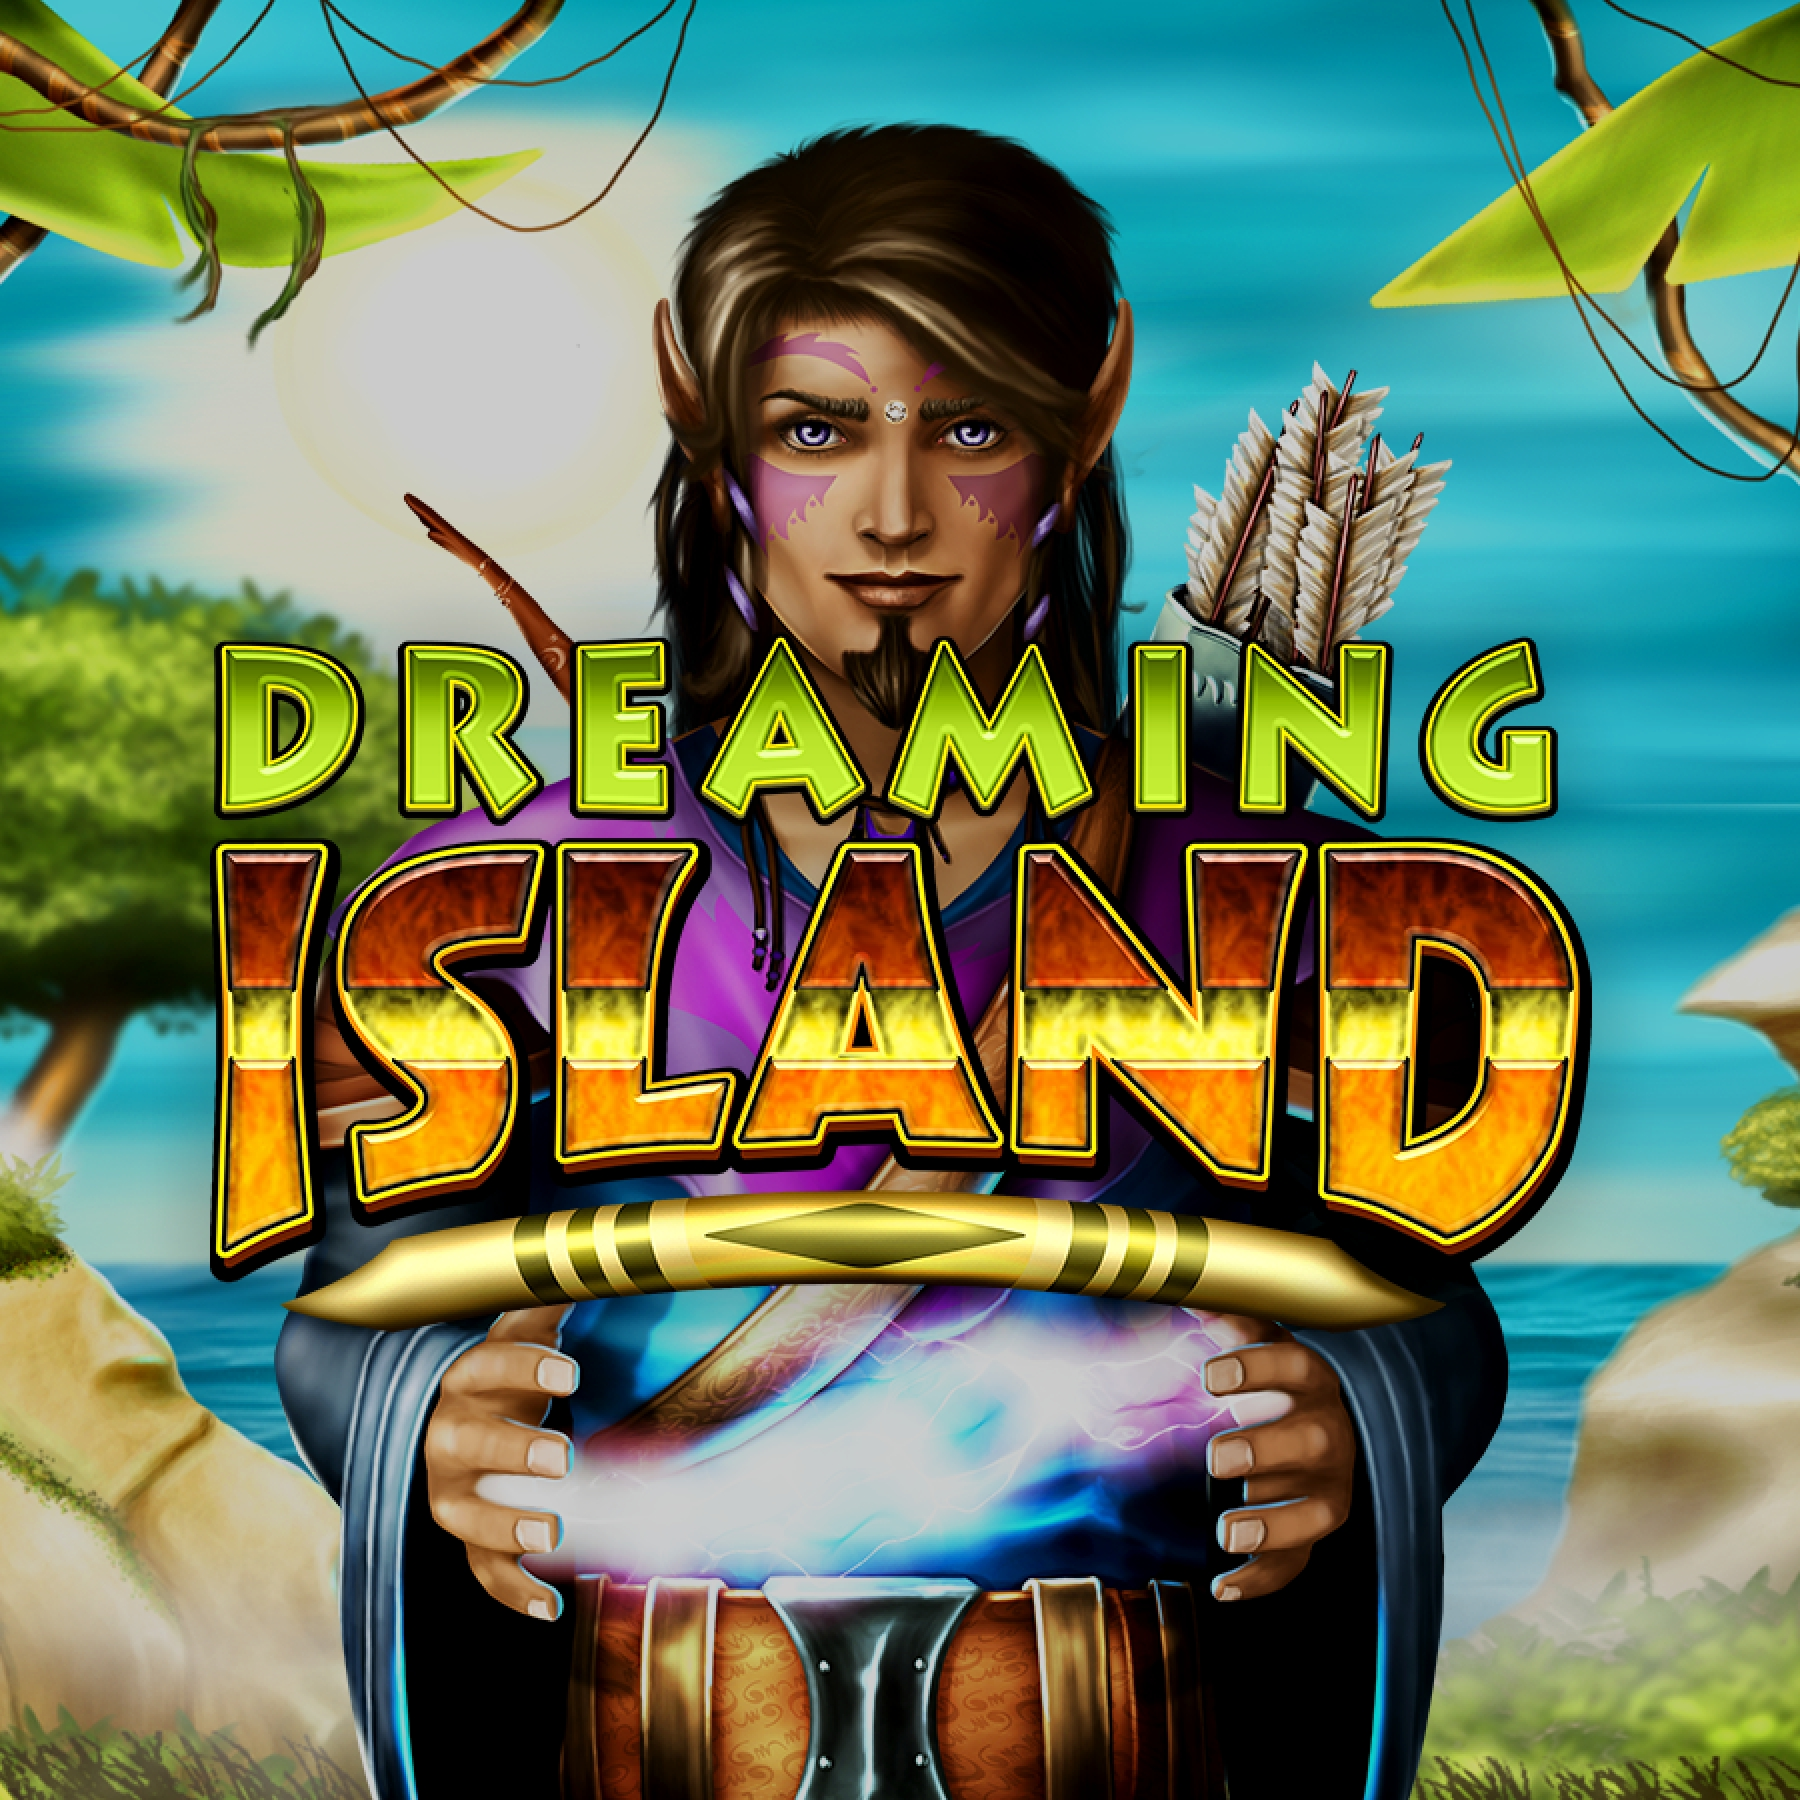 The Dreaming Island Online Slot Demo Game by Merkur Gaming